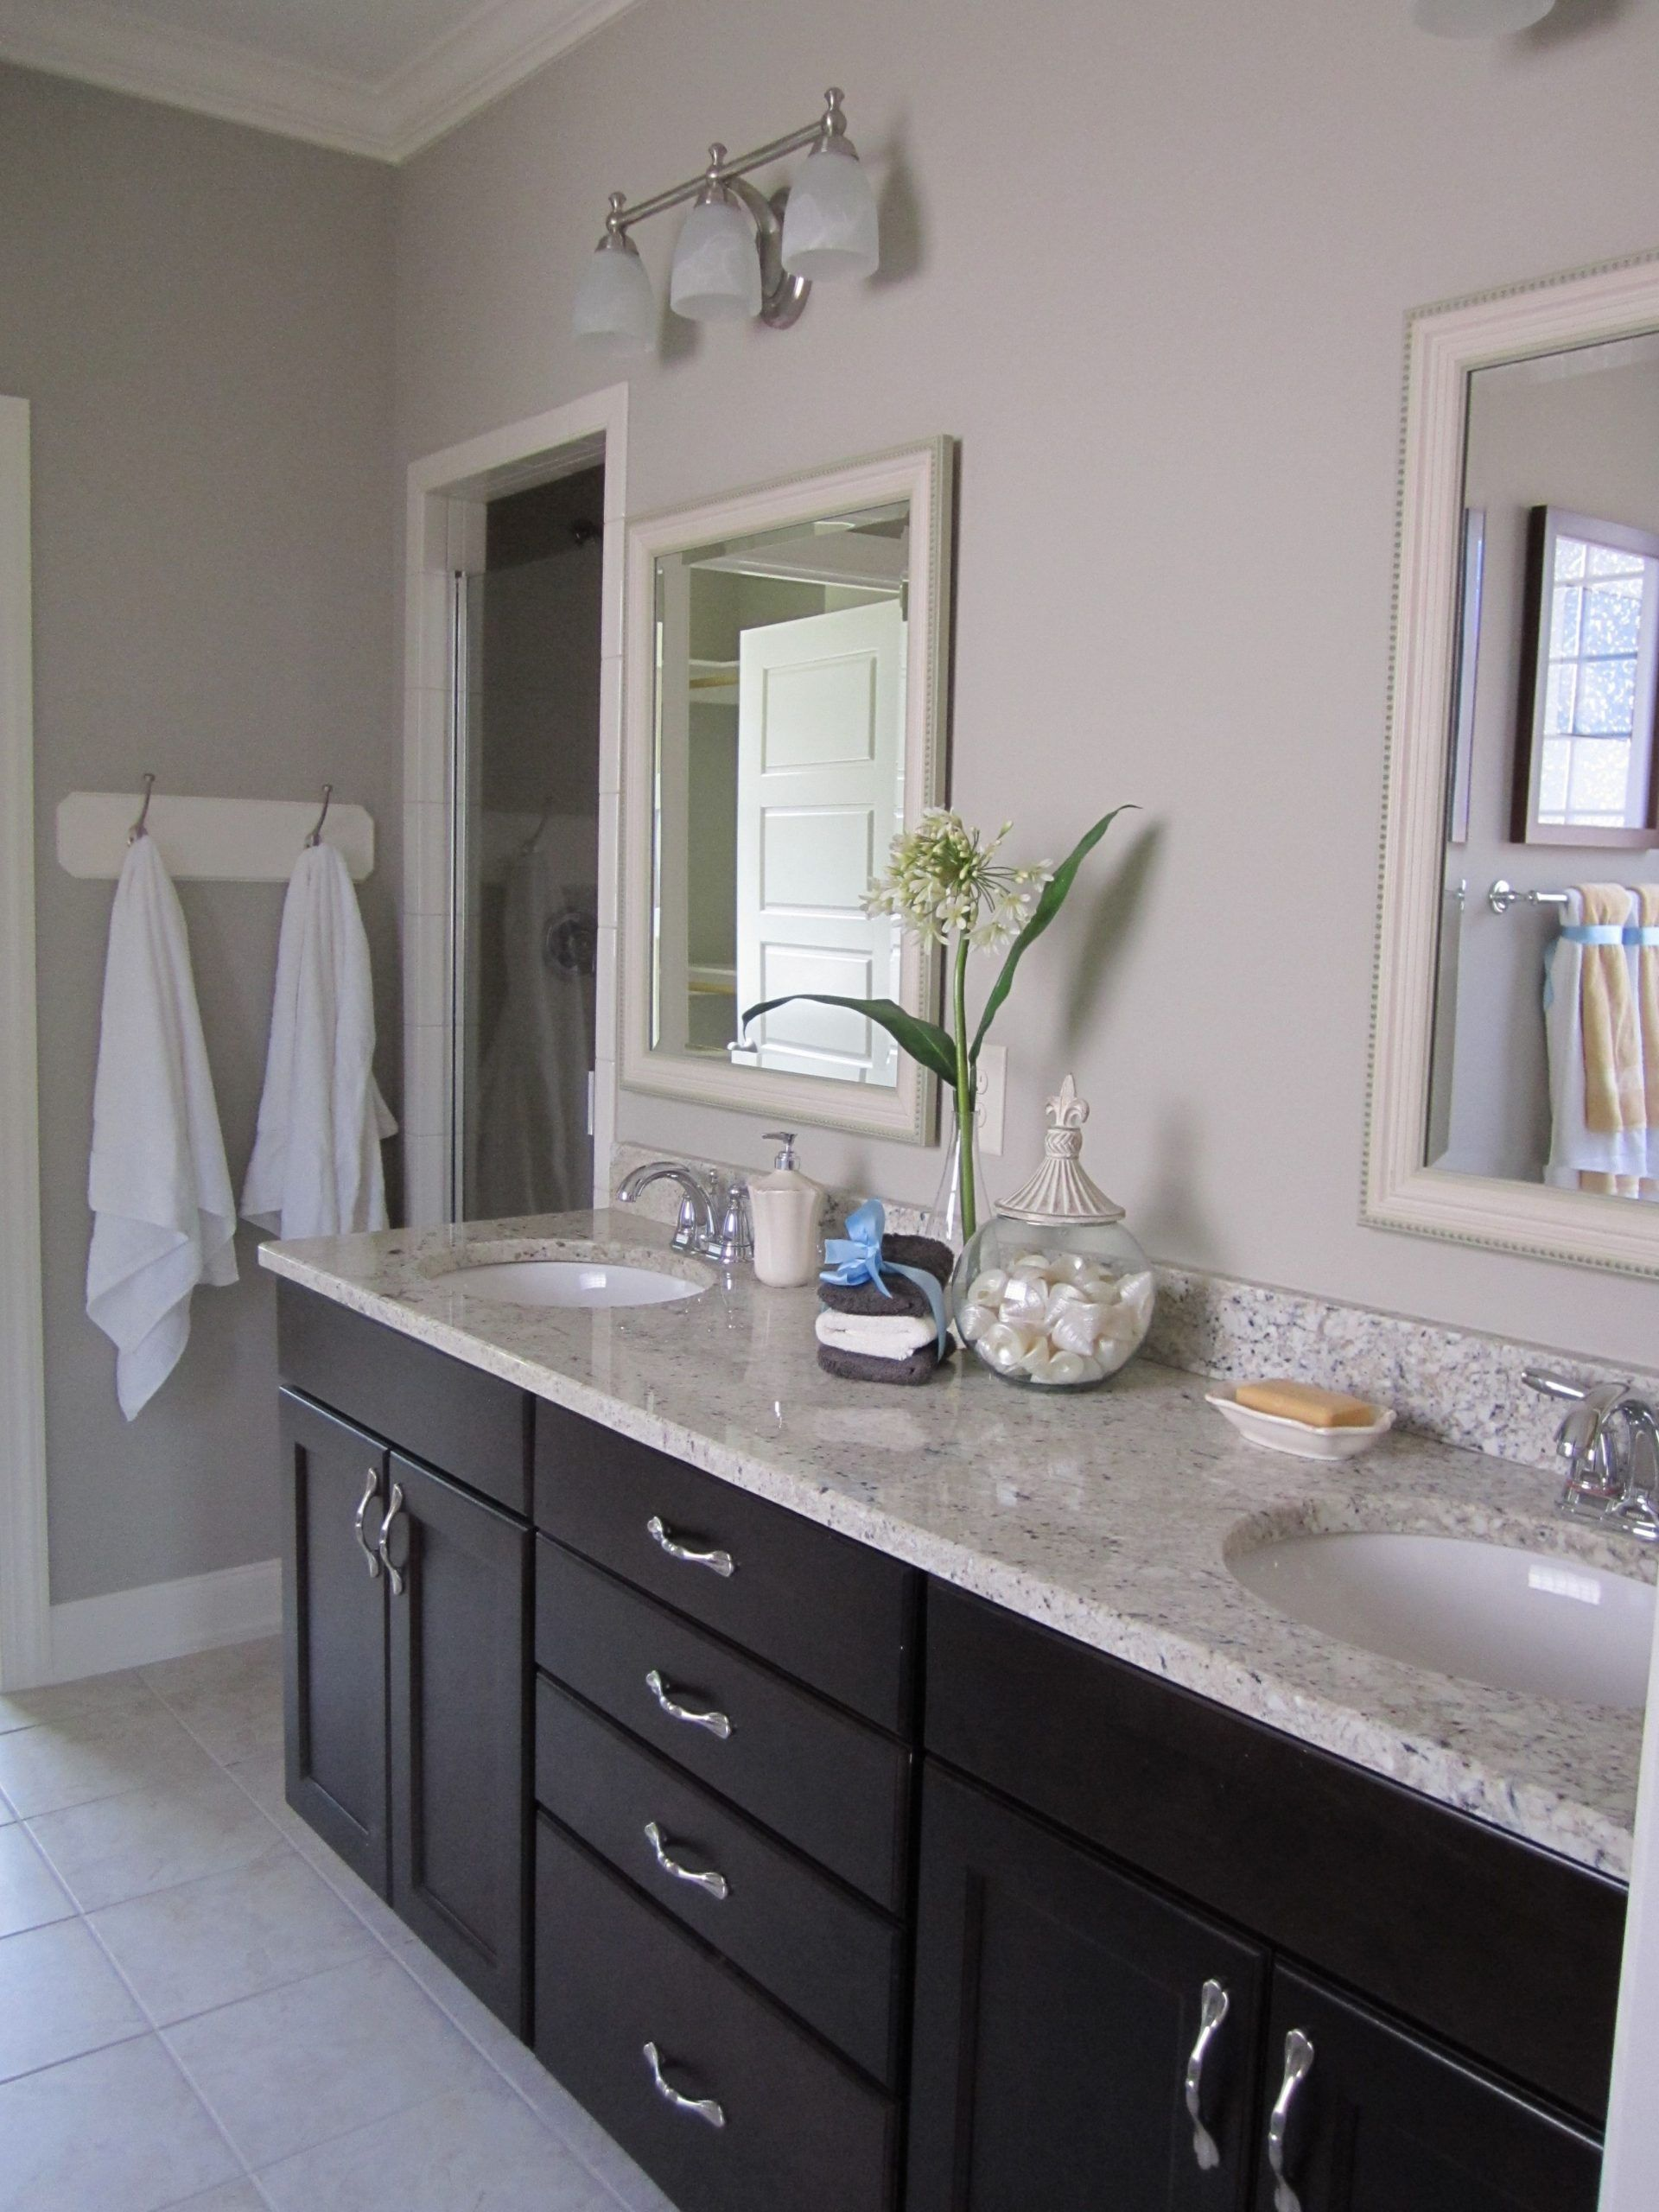 Bathroom Paint Color With Dark Cabinets Bathroom Wall Colors White Bathroom Cabinets Bathroom Countertops [ 2560 x 1920 Pixel ]